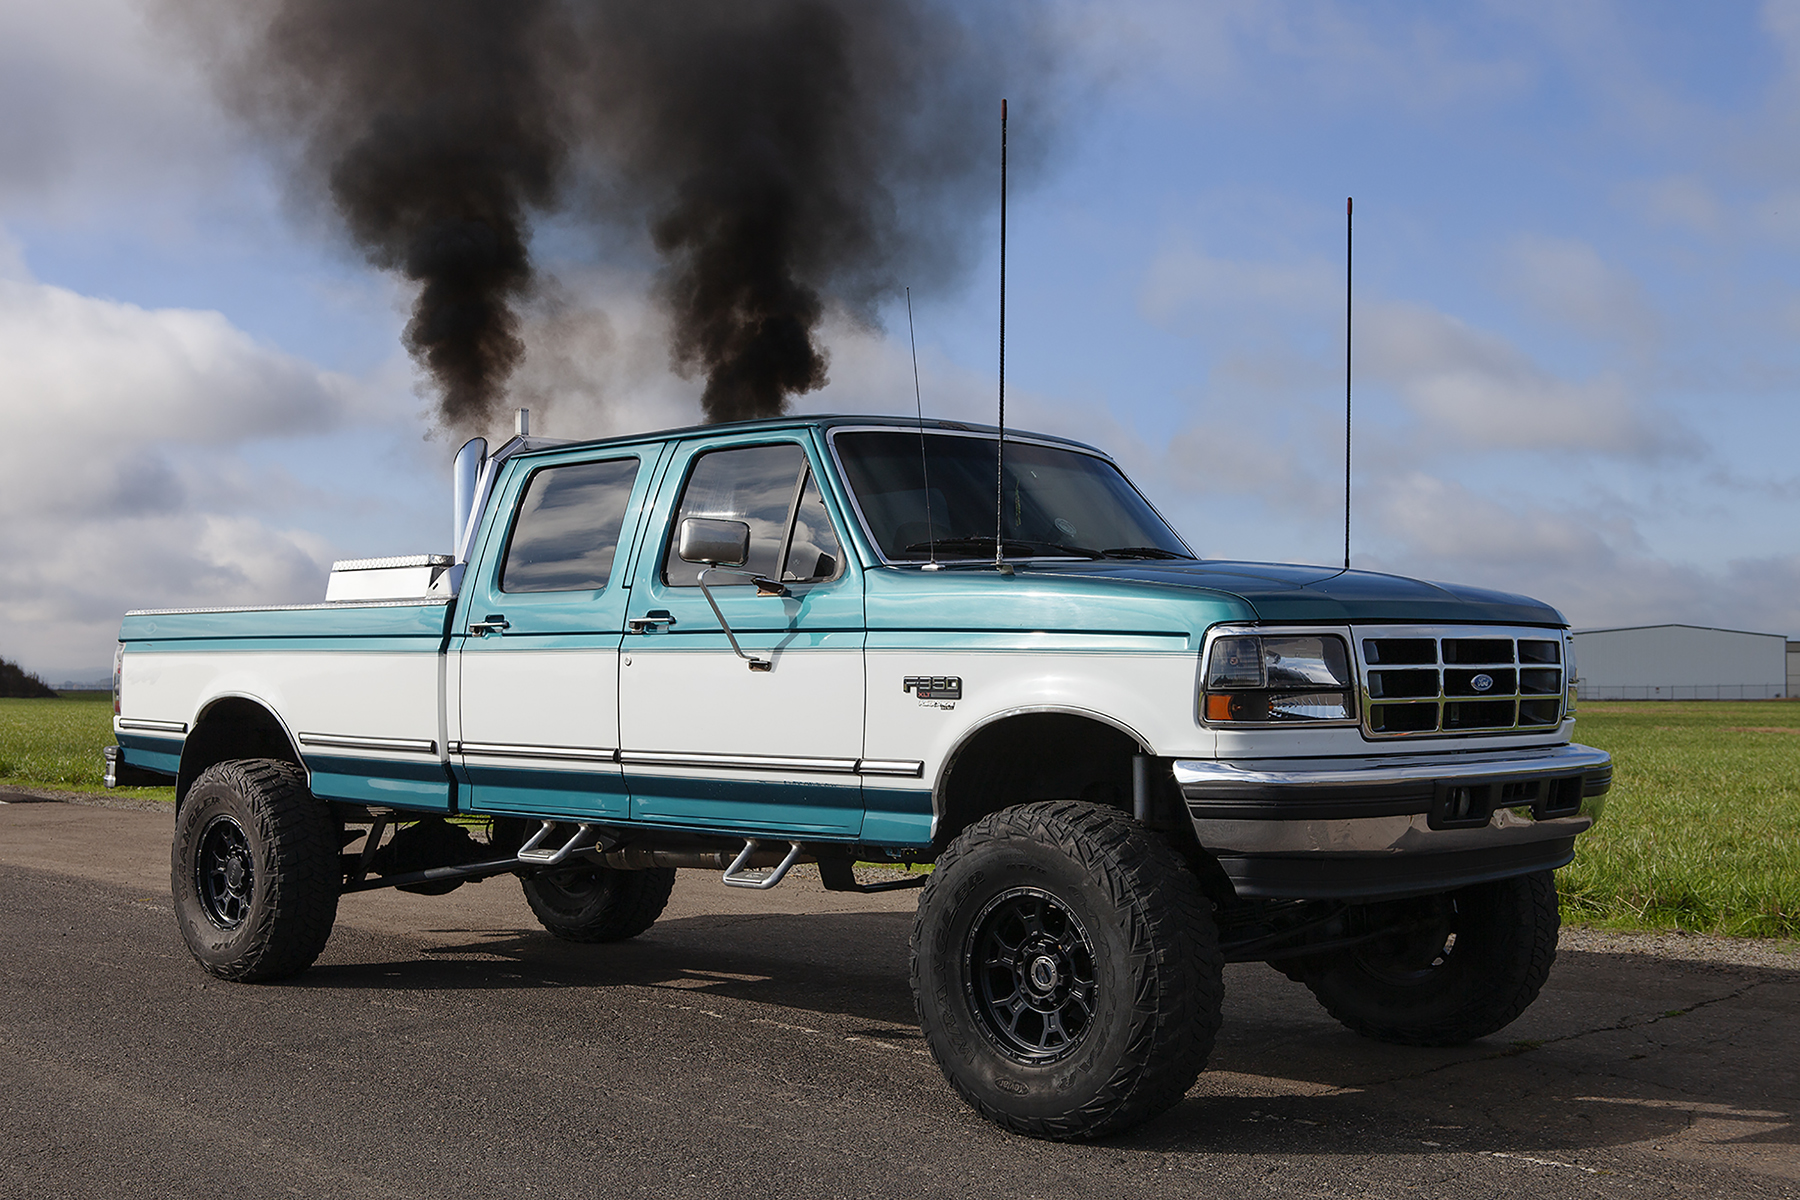 Photograph of a blue and white pickup truck driving on a road. The view is from the side of the truck, asphalt in the foreground, grass and partly cloudy sky in the background. Two dark black plumes of smoke rise from the exhaust pipes on the back of the cab of the truck.